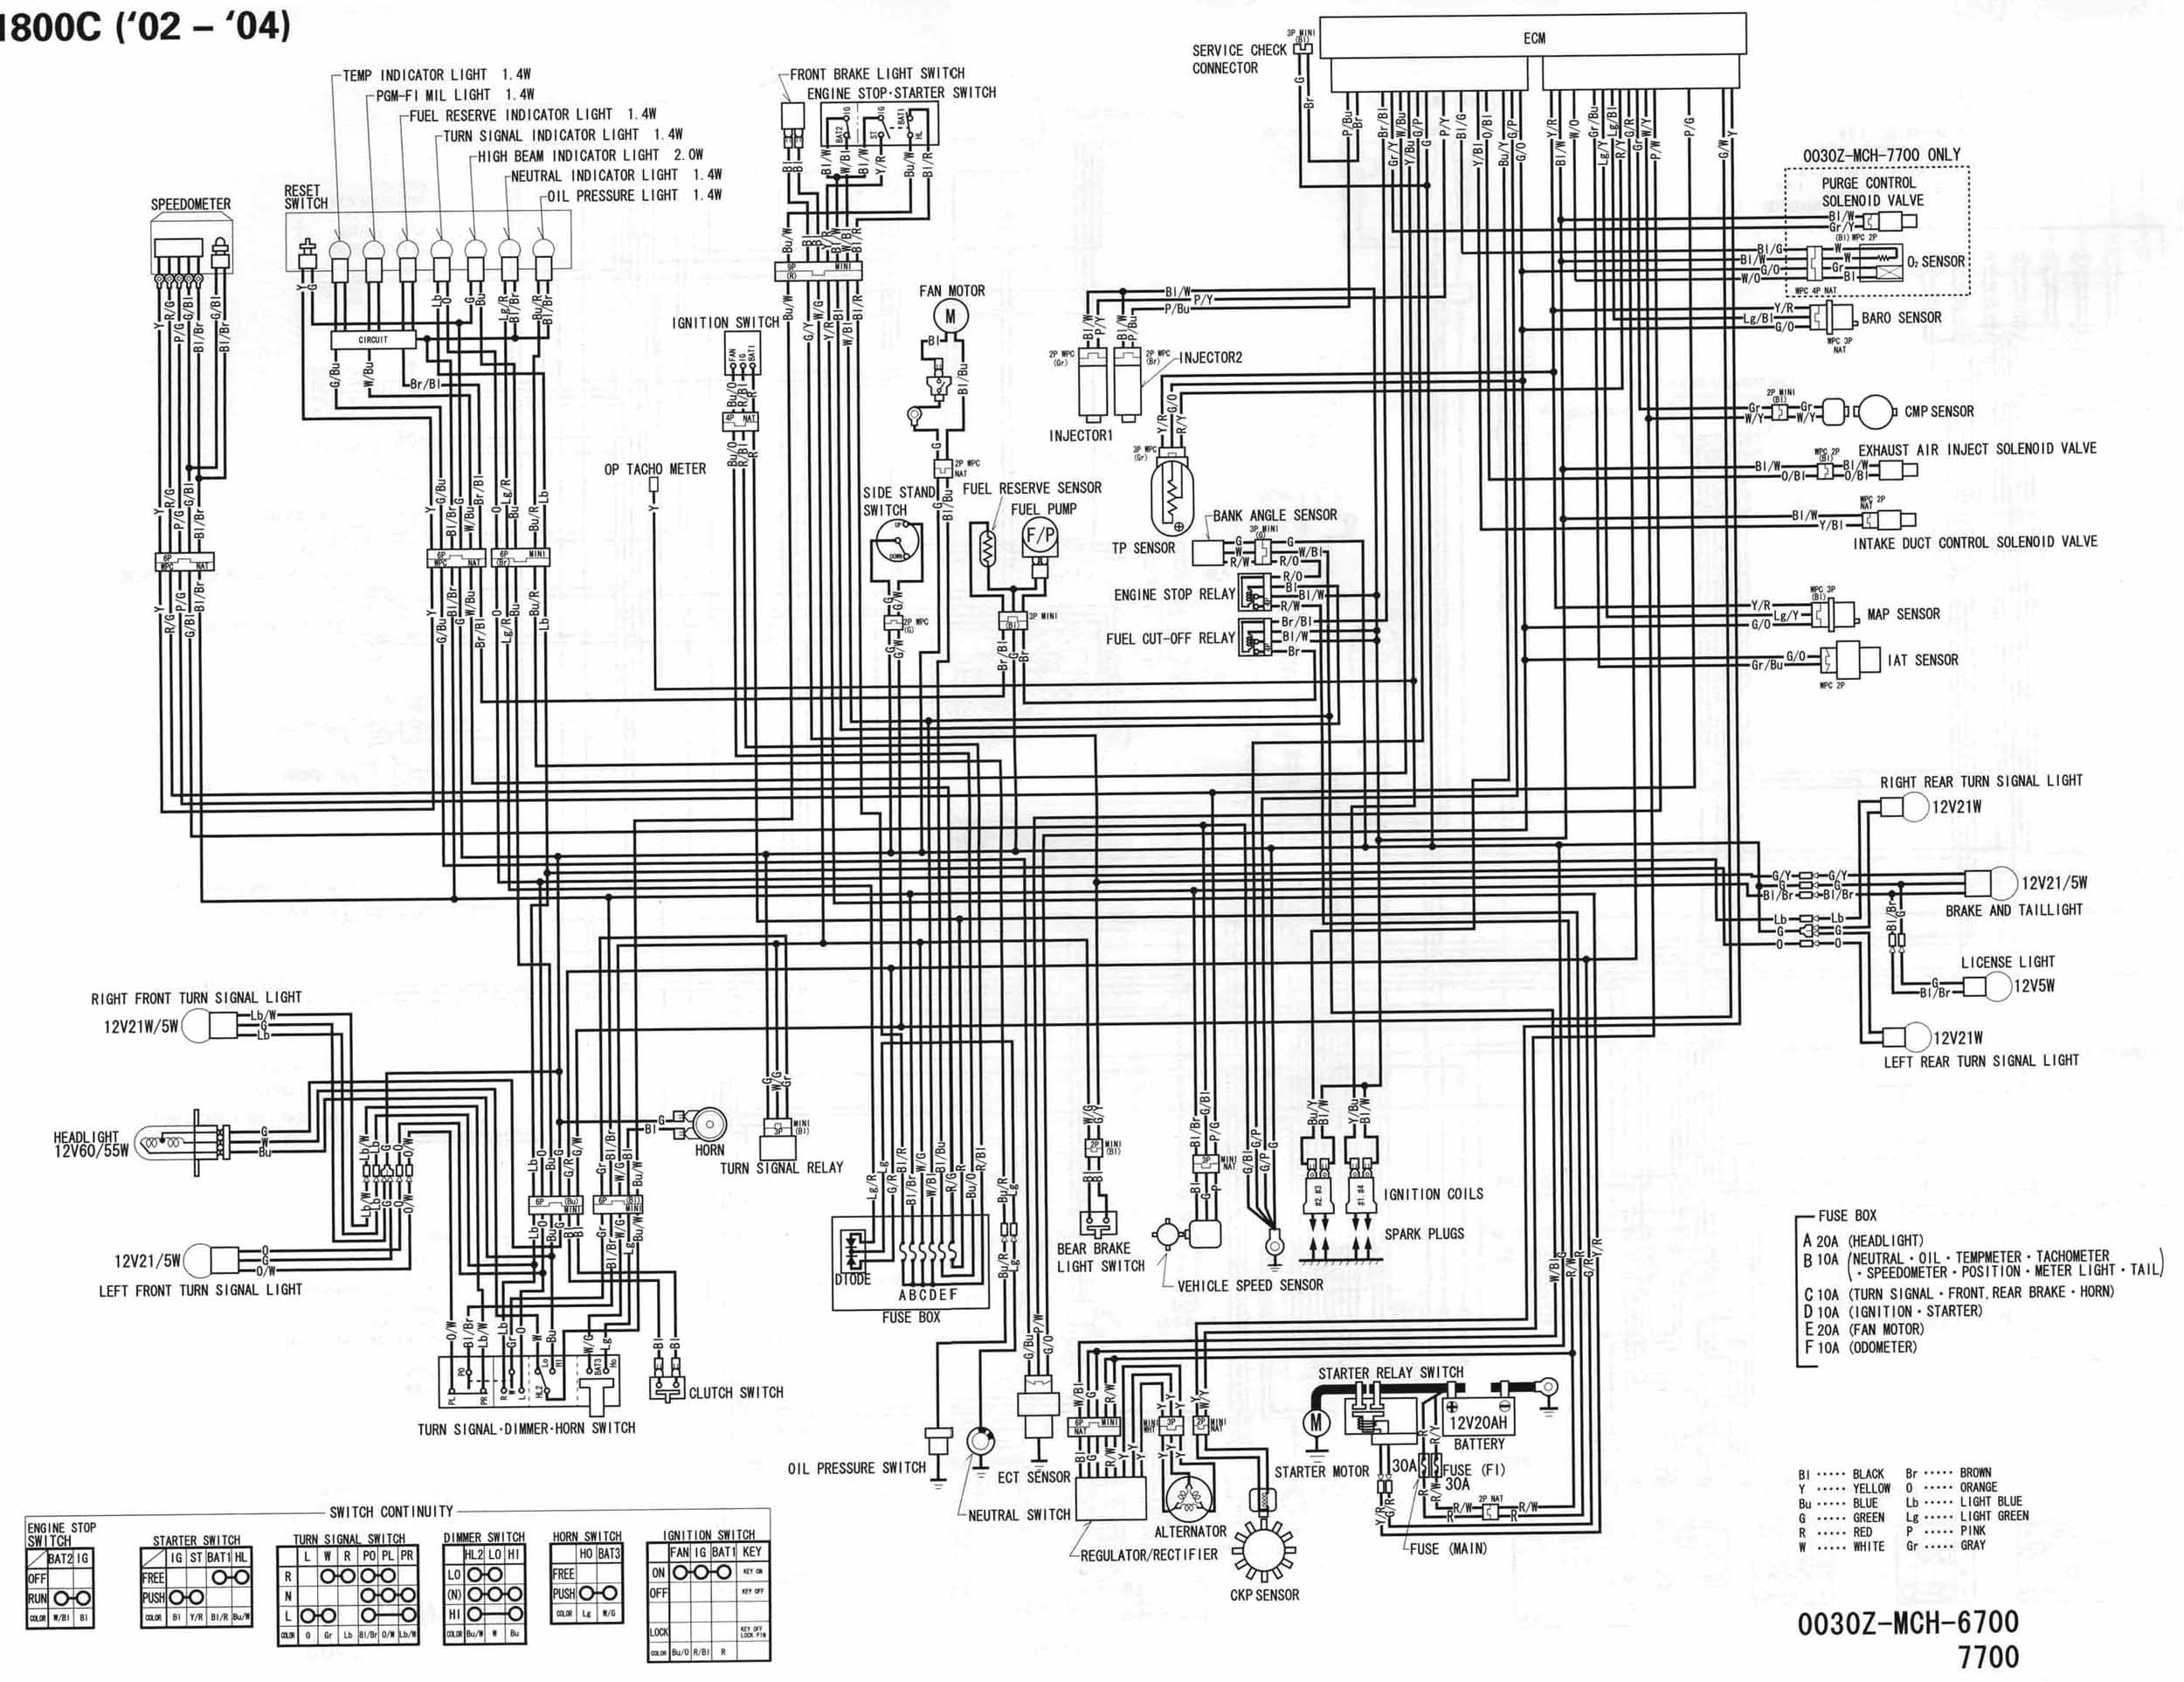 Electrical Outlet Wiring Diagram Big Horn - Find Wiring Diagram •